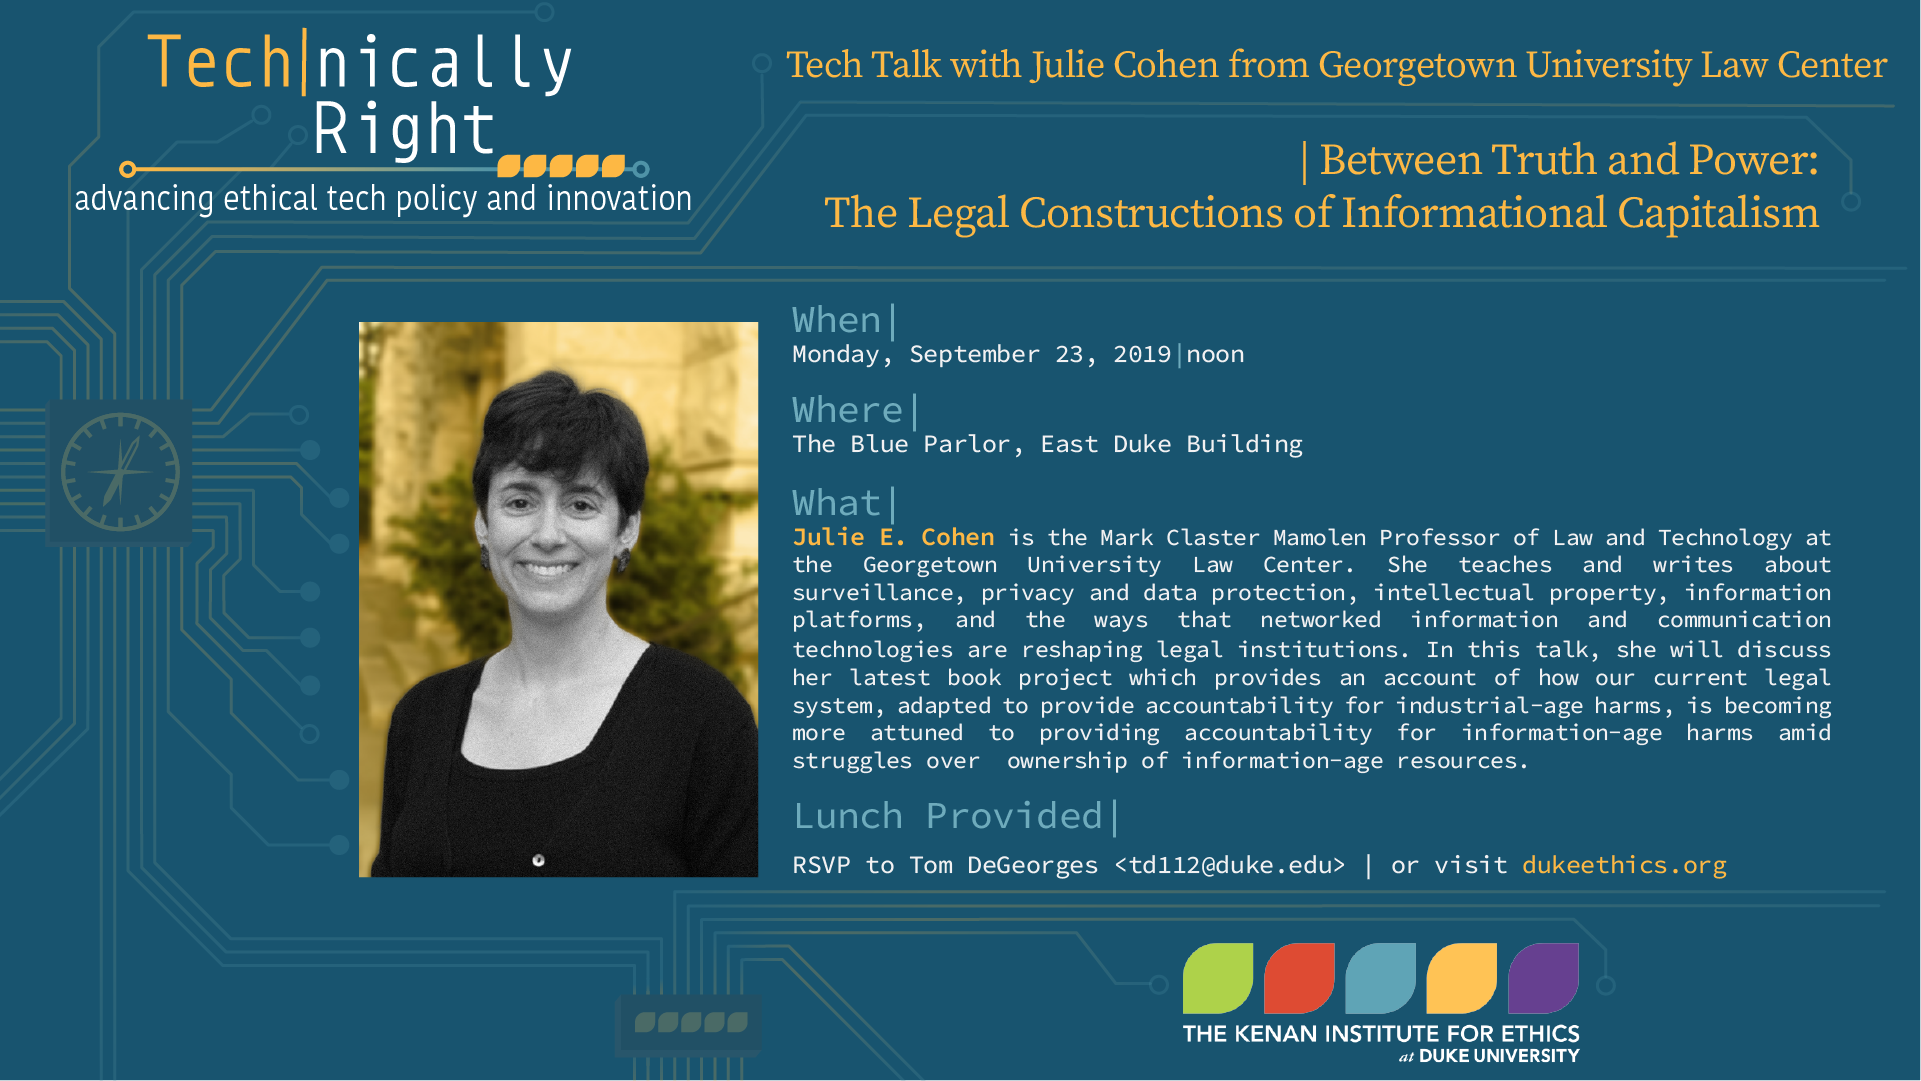 Tech Talk: between truth and power: the legal constructions of informational capitalism with Julie Cohen from Georgetown University Law Center